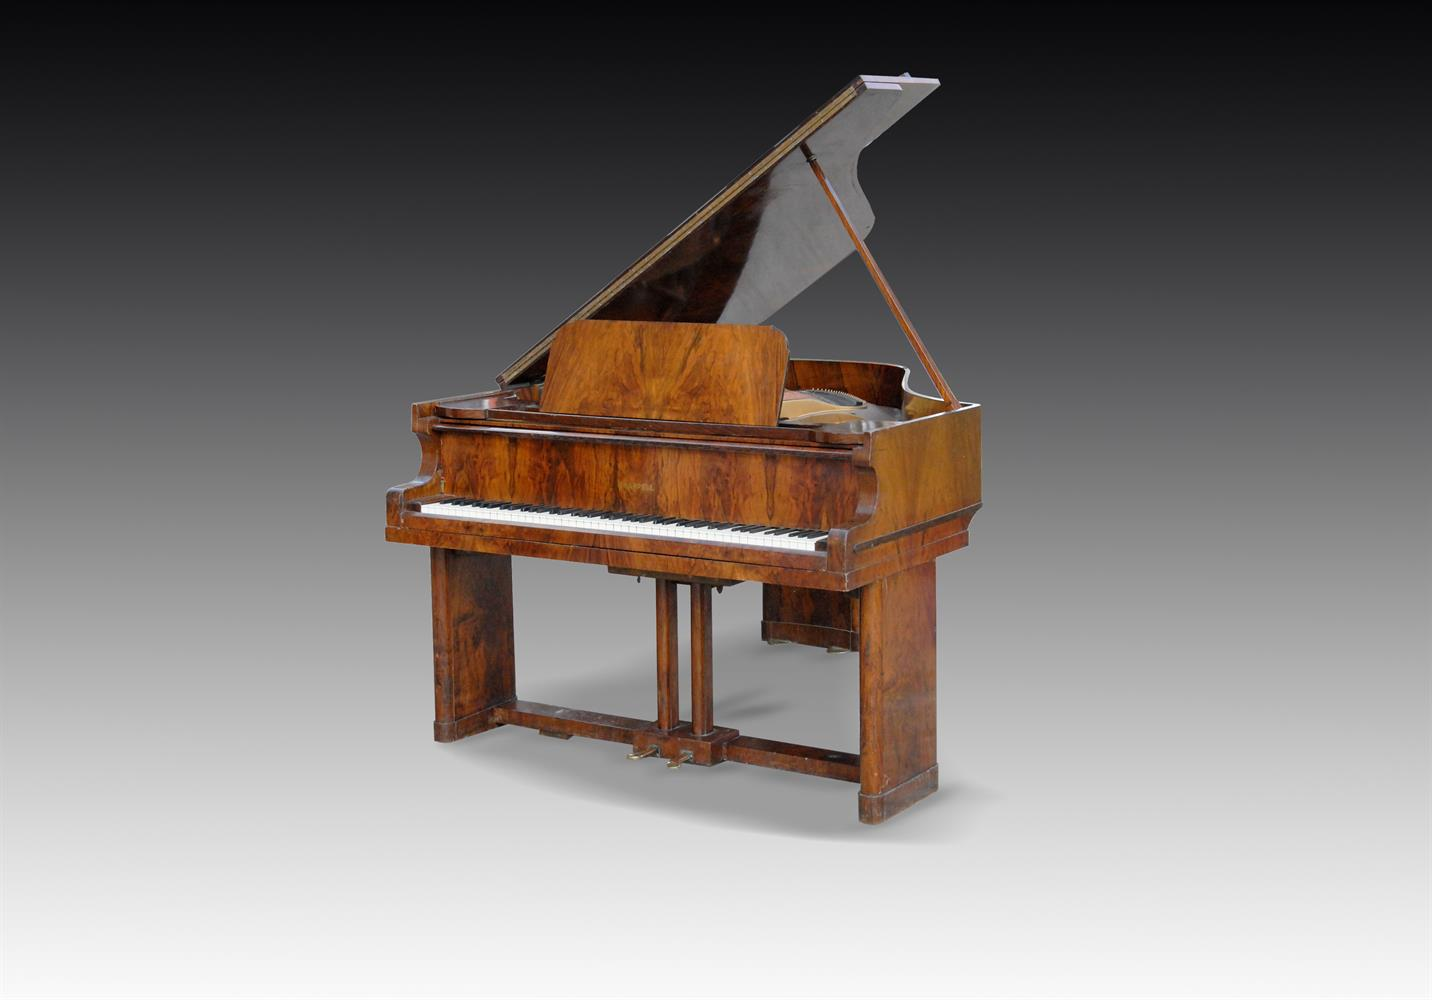 † CHAPPELL; A 6' 2'' GRAND PIANO FROM THE MAURETANIA 2, NUMBER 83215, 1948